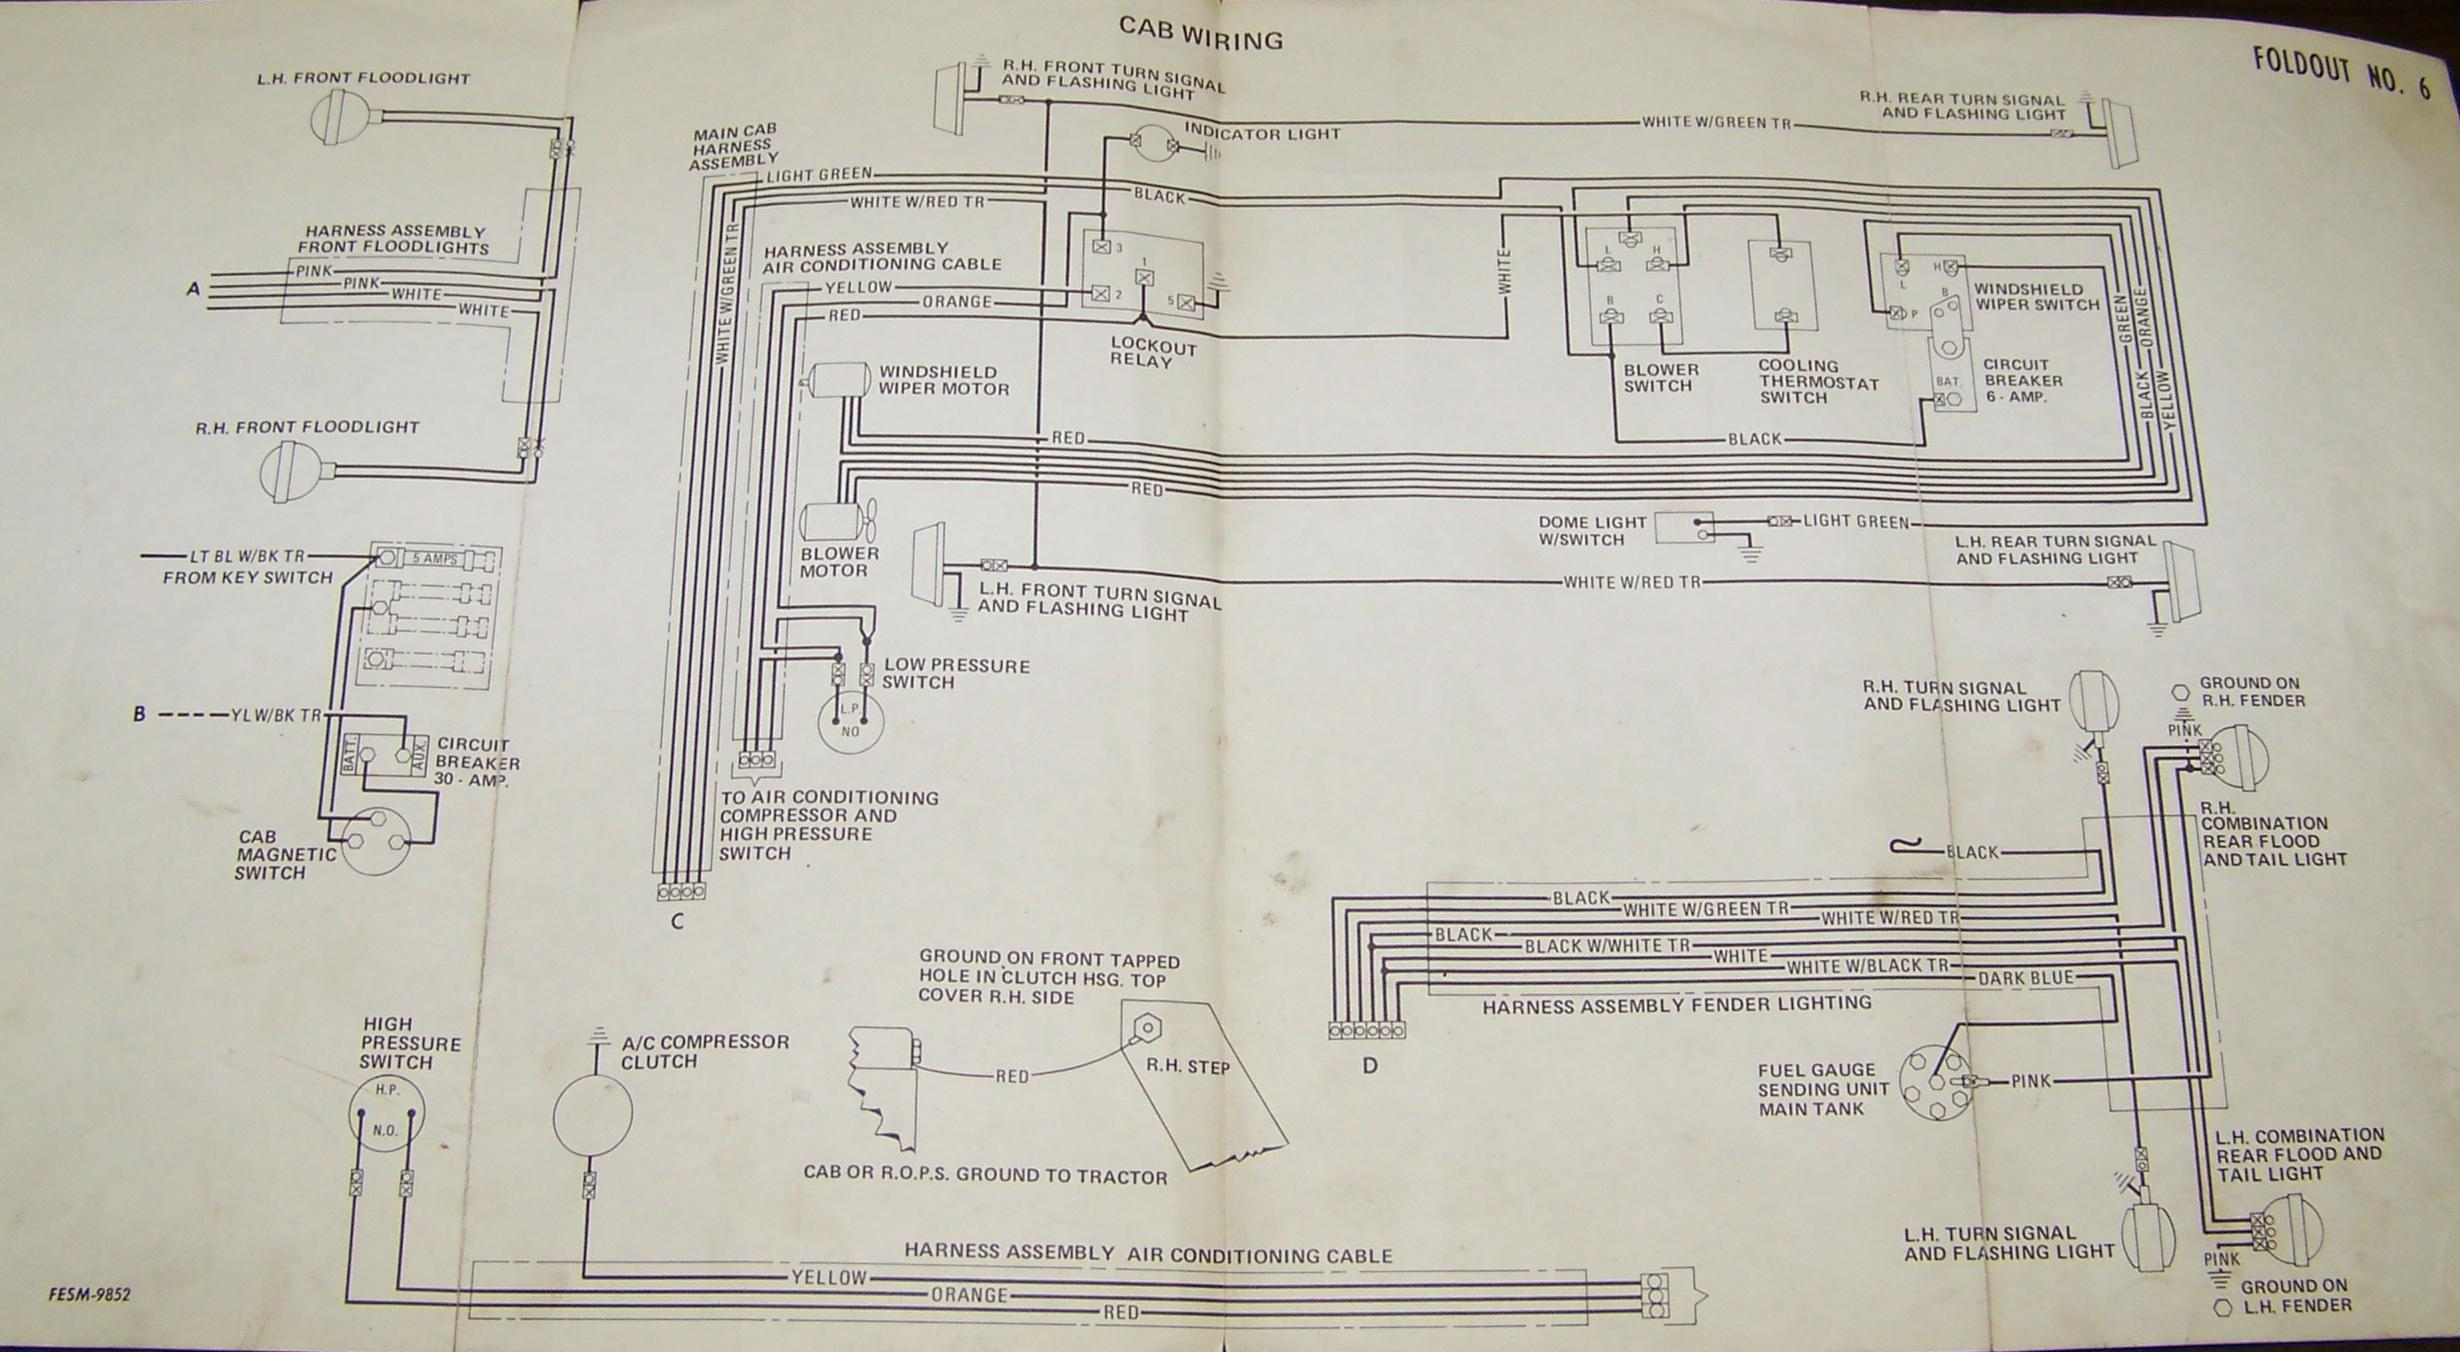 86series6 international motor diagrams ge electric motor wiring diagram 856 international wiring harness at gsmx.co